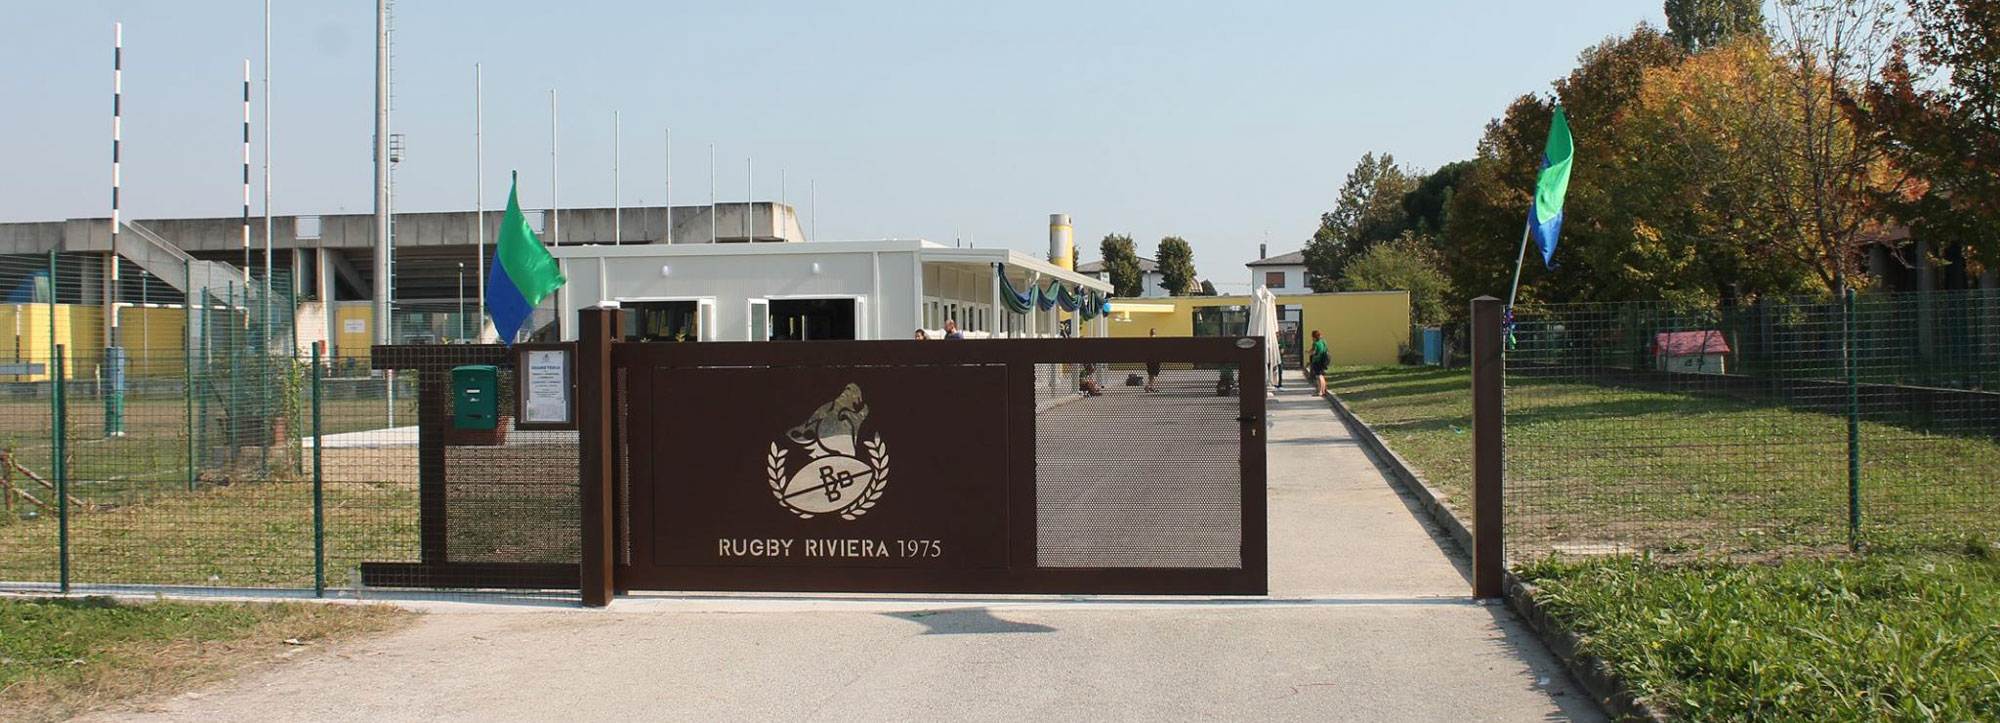 Rugby Riviera 1975 - club-house